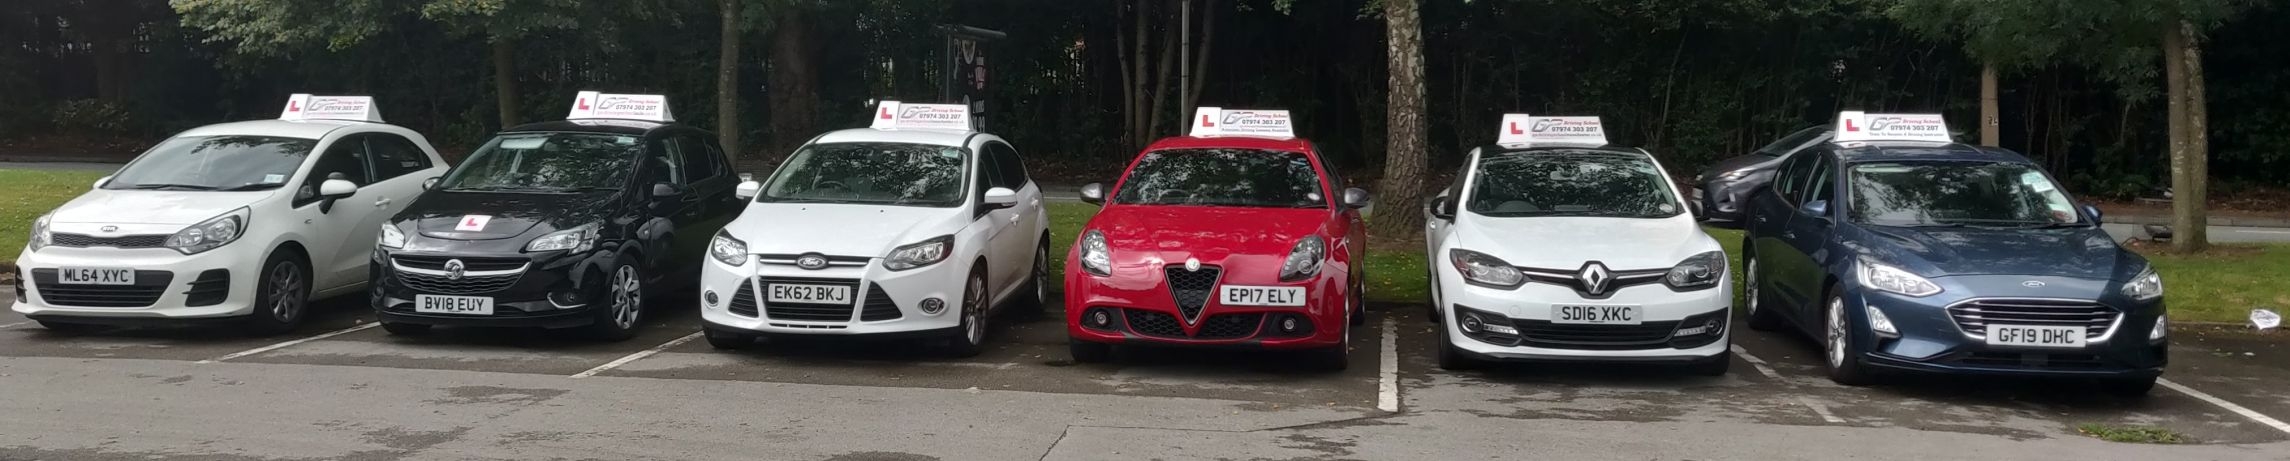 driving lessons south manchester